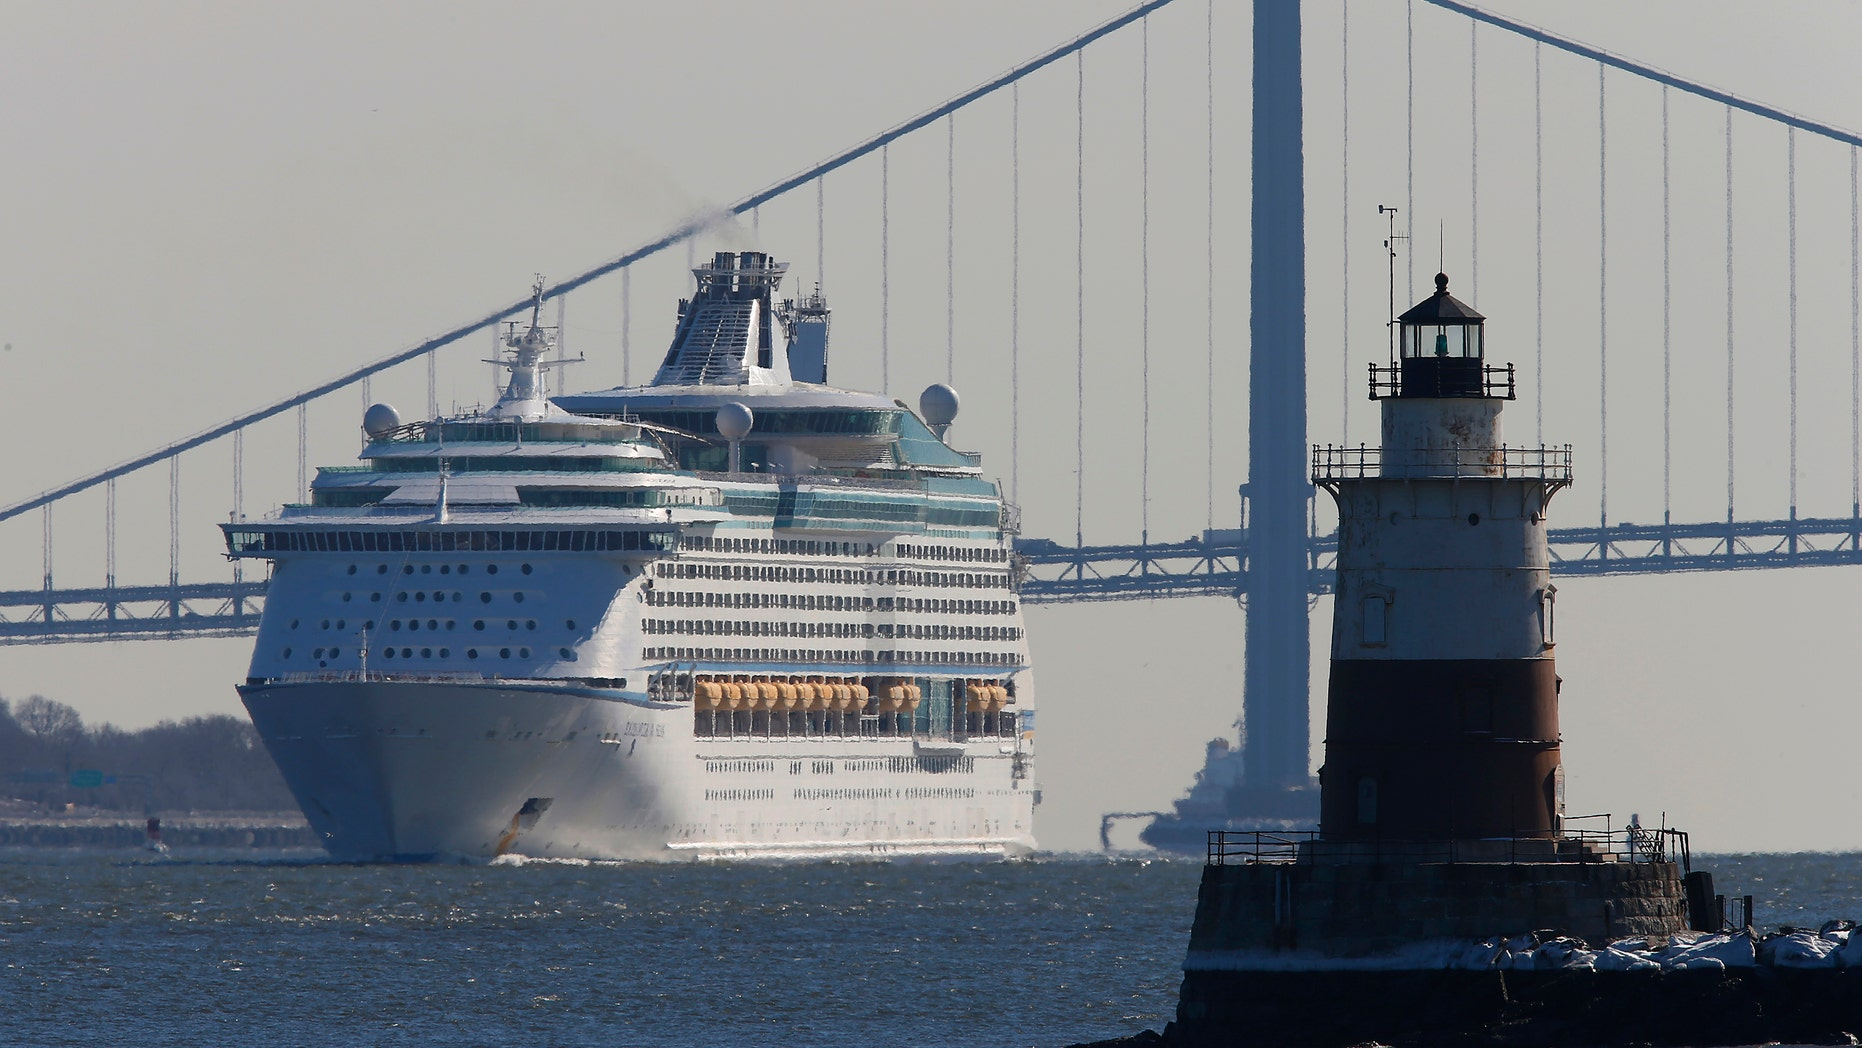 The Royal Caribbean's cruise ship Explorer of the Seas arrives back at Bayonne, New Jersey January 29, 2014. (REUTERS/Eduardo Munoz)